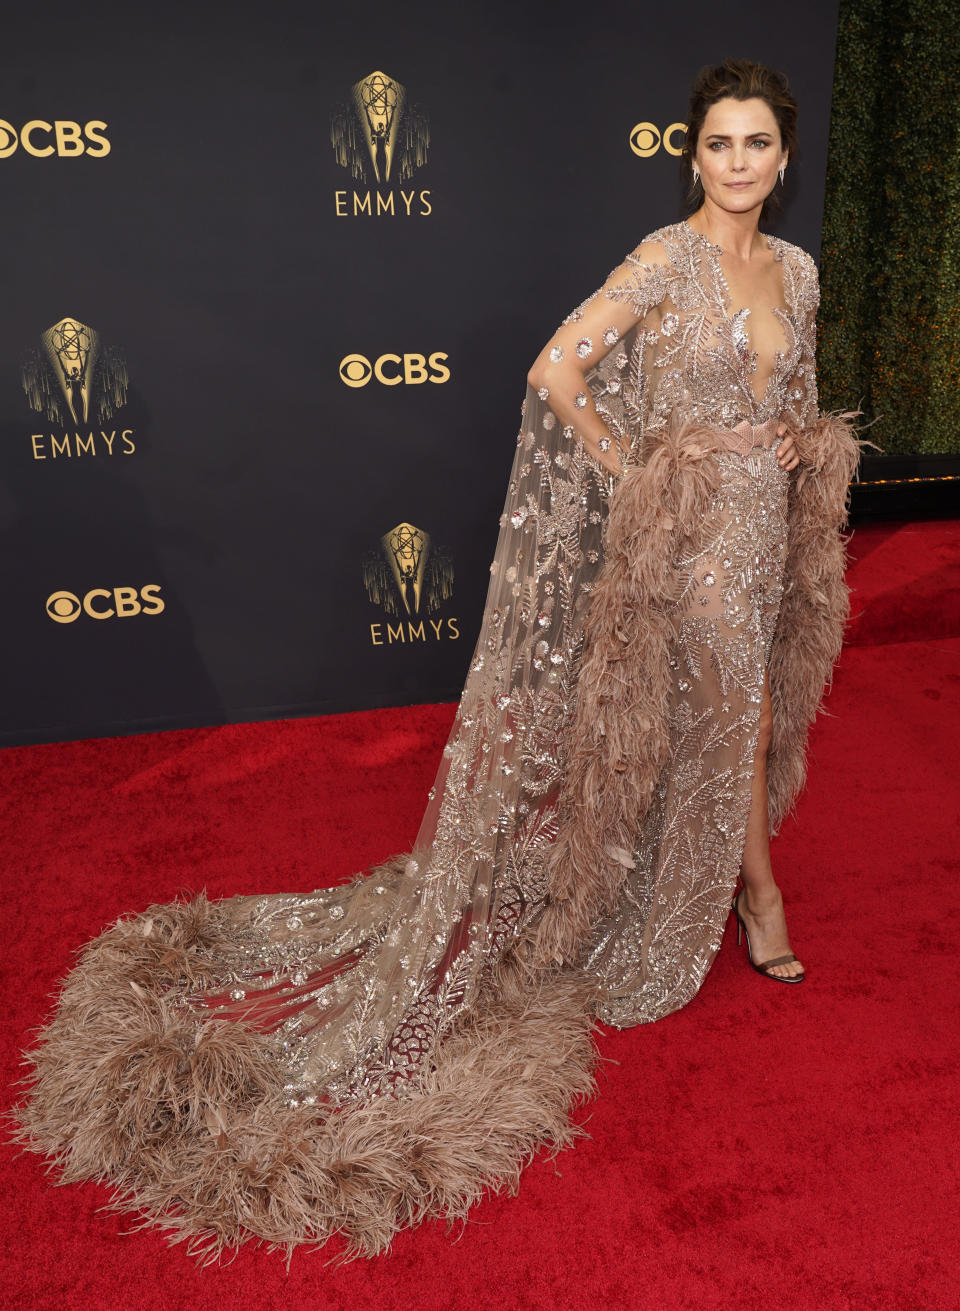 Keri Russell arrives at the 73rd Primetime Emmy Awards on Sunday, Sept. 19, 2021, at L.A. Live in Los Angeles. (AP Photo/Chris Pizzello)